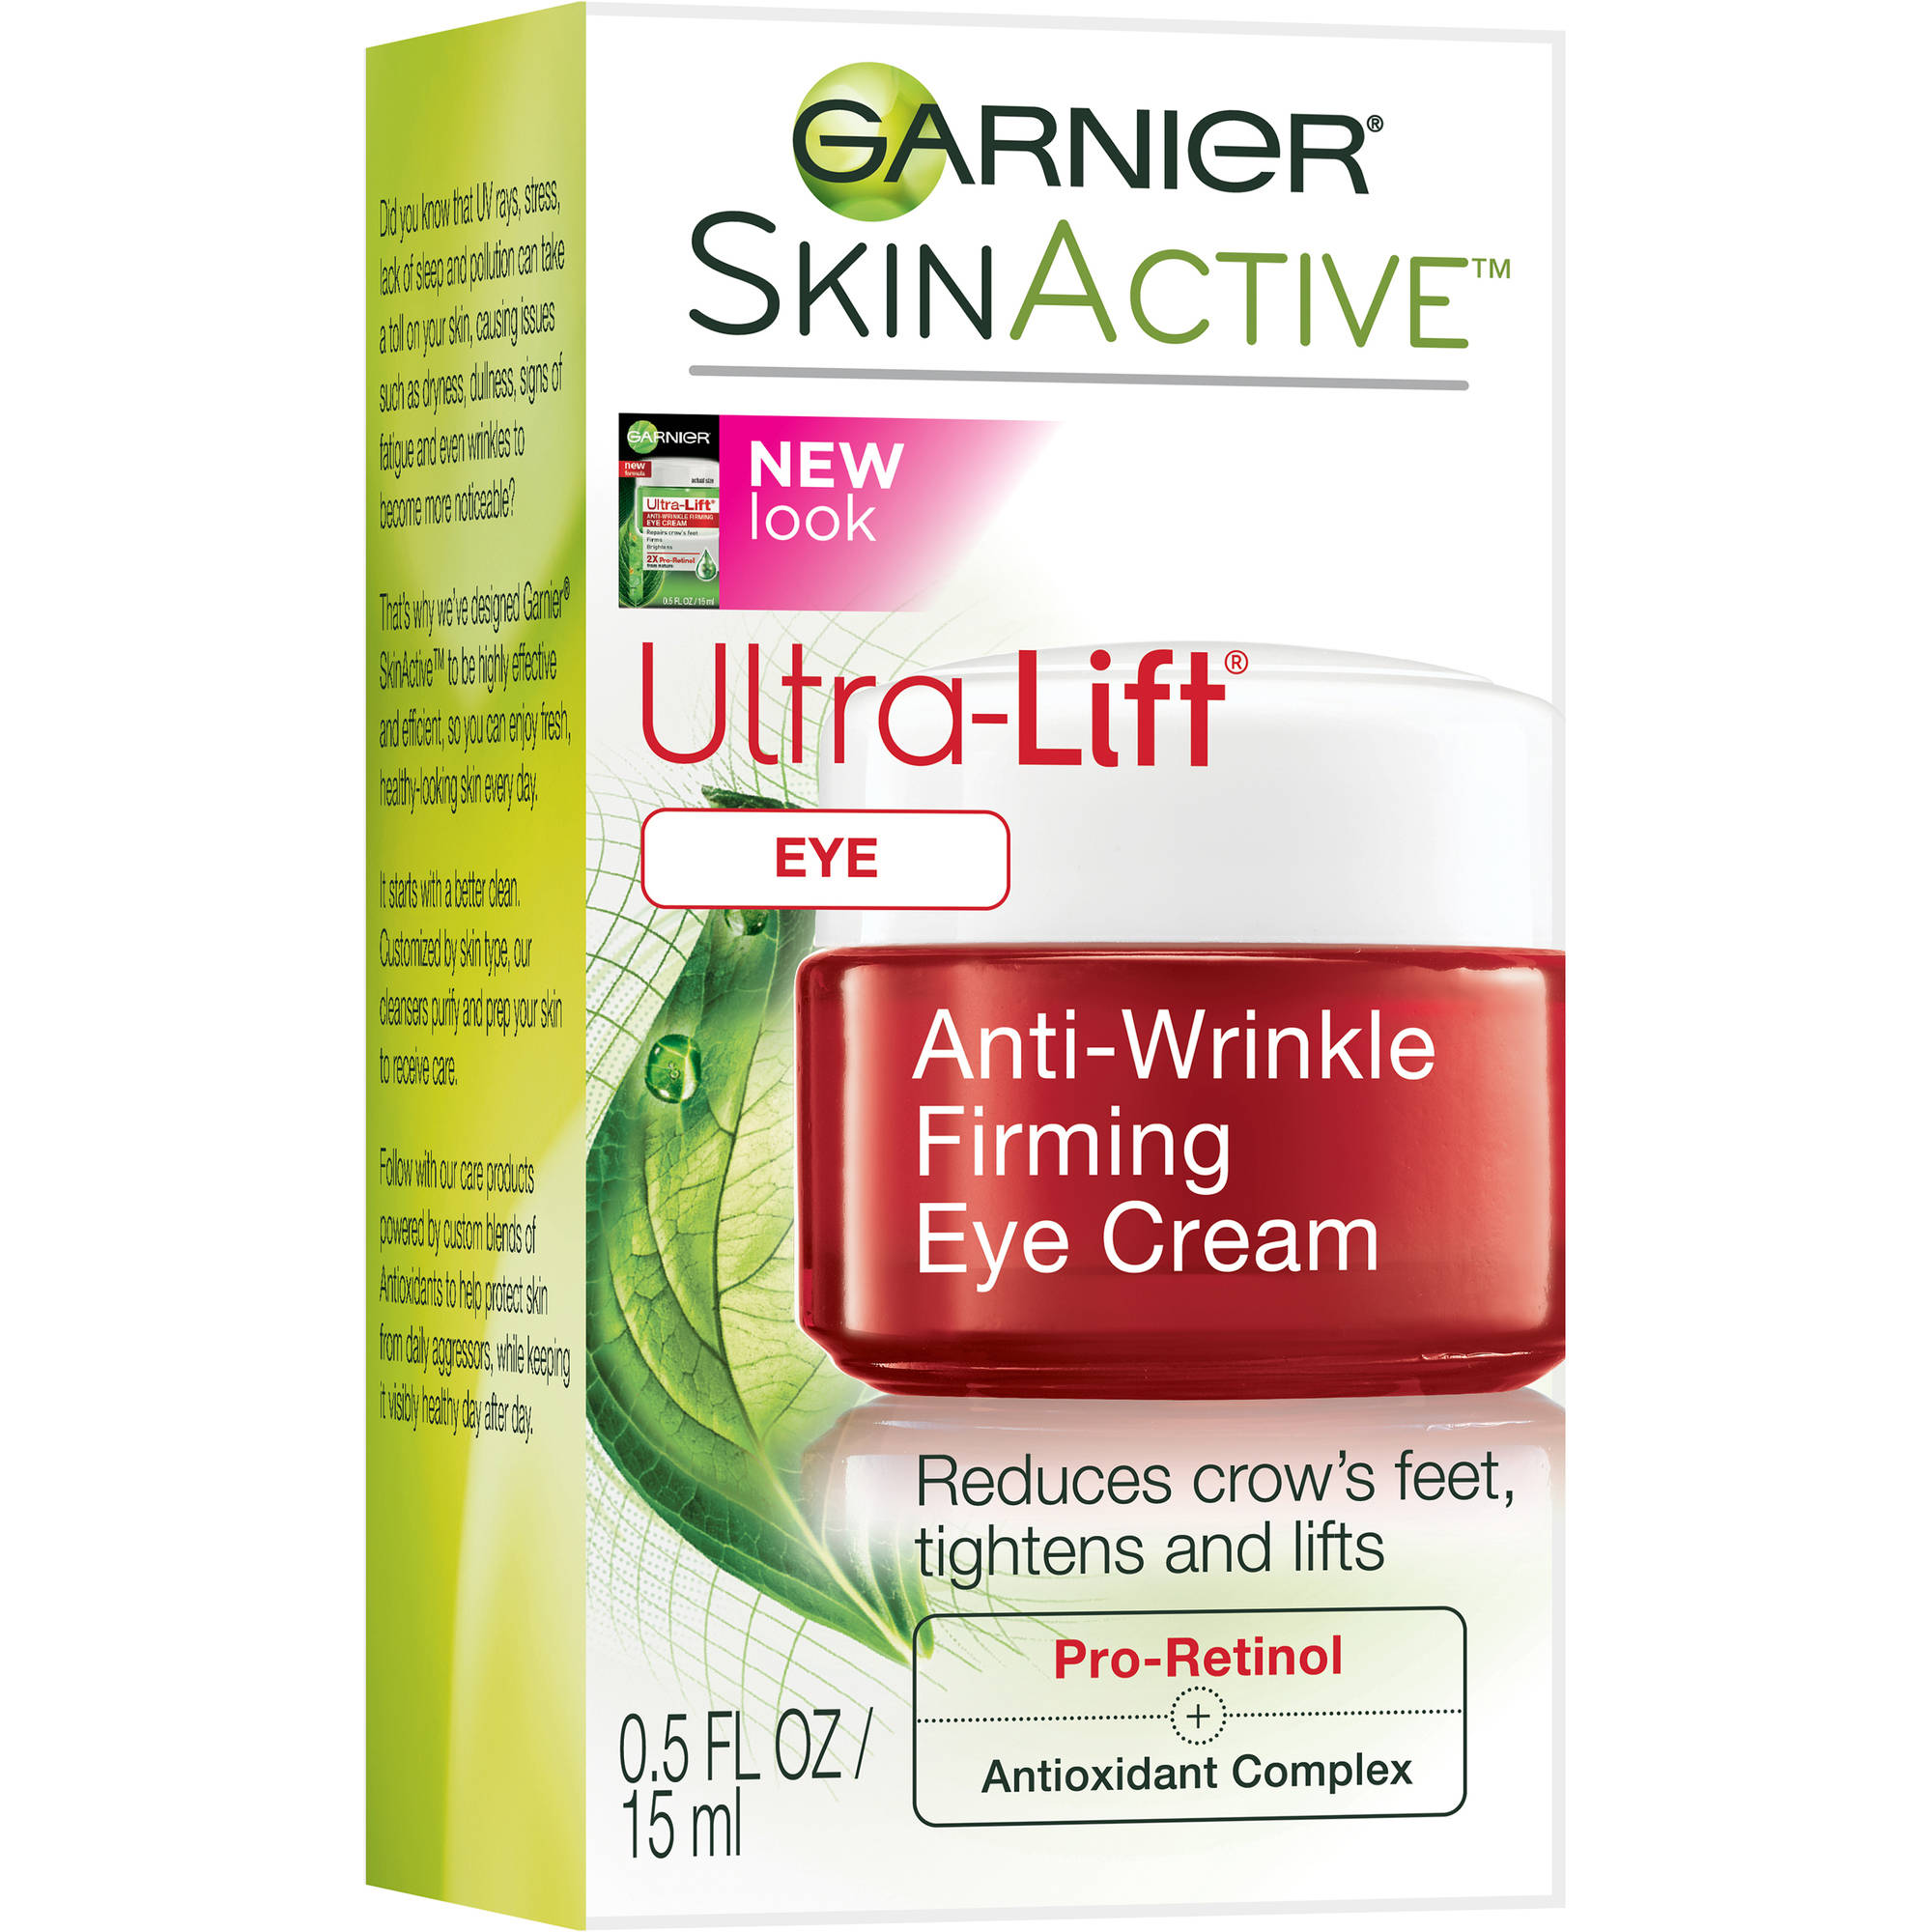 Garnier SkinActive Ultra-Lift Anti-Wrinkle Firming Eye Cream, 0.5 fl oz